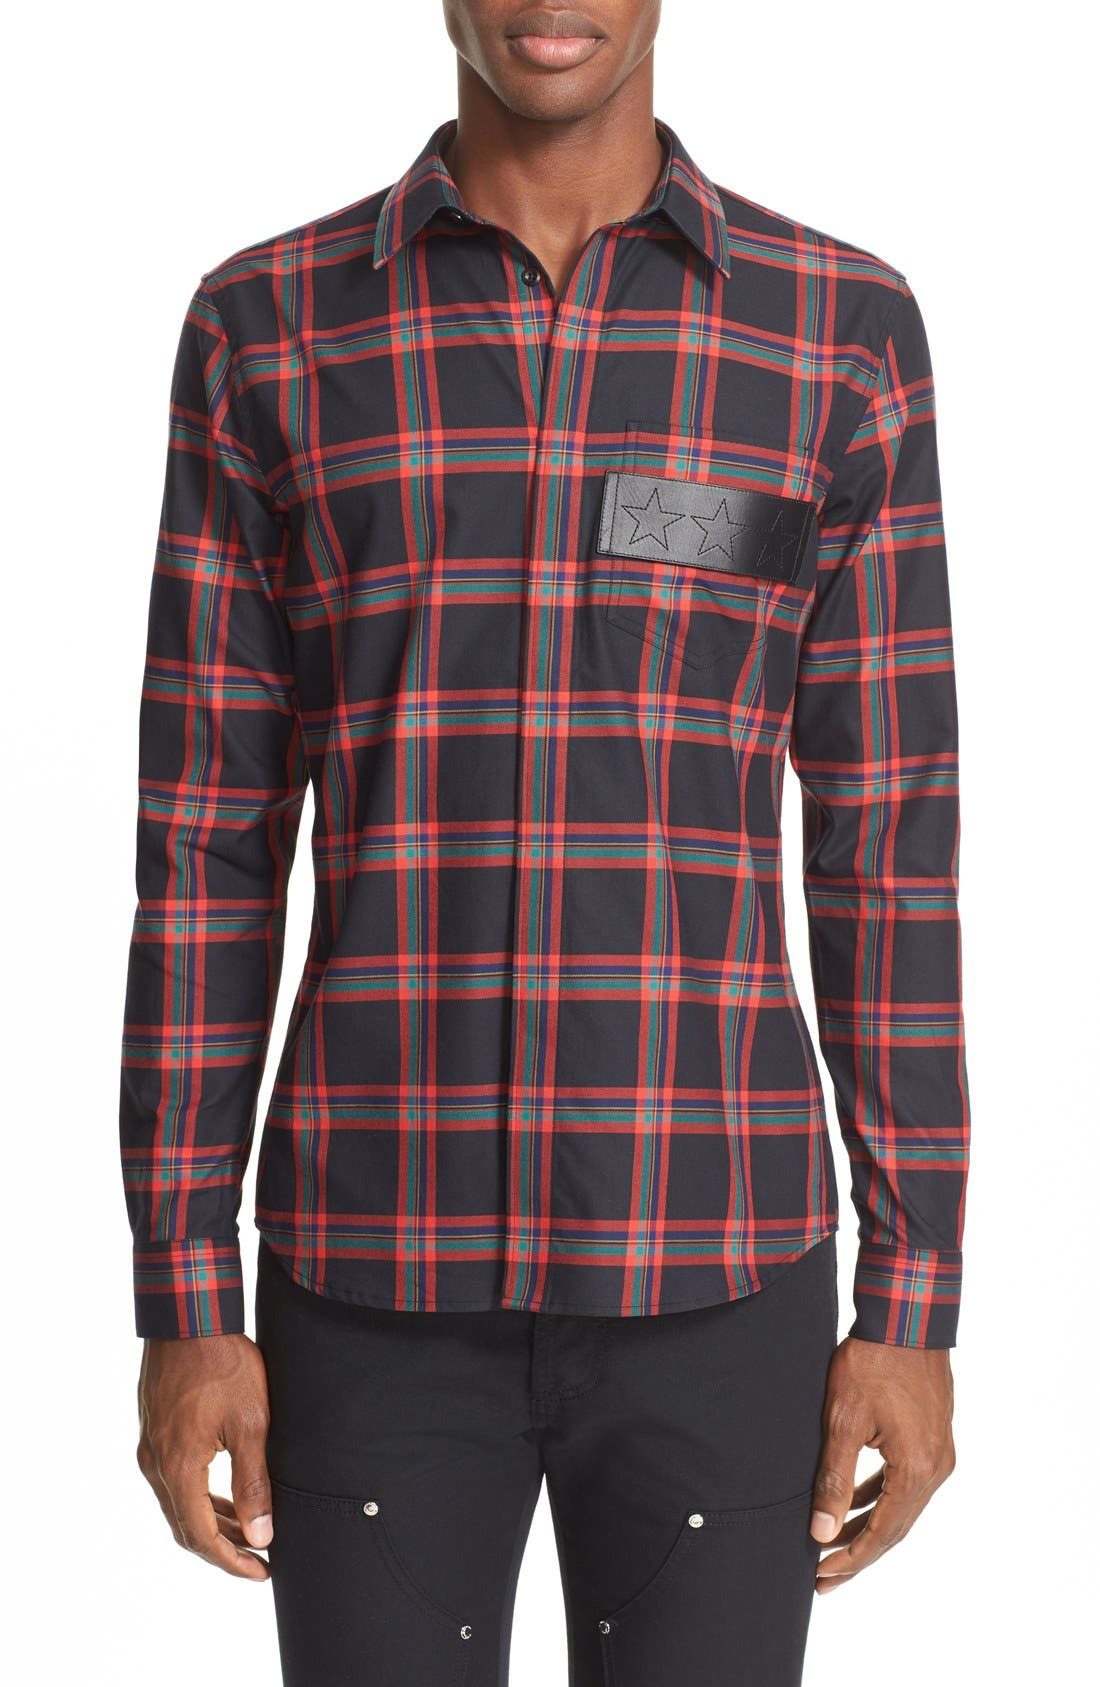 GIVENCHY Plaid Woven Shirt with Leather Trim